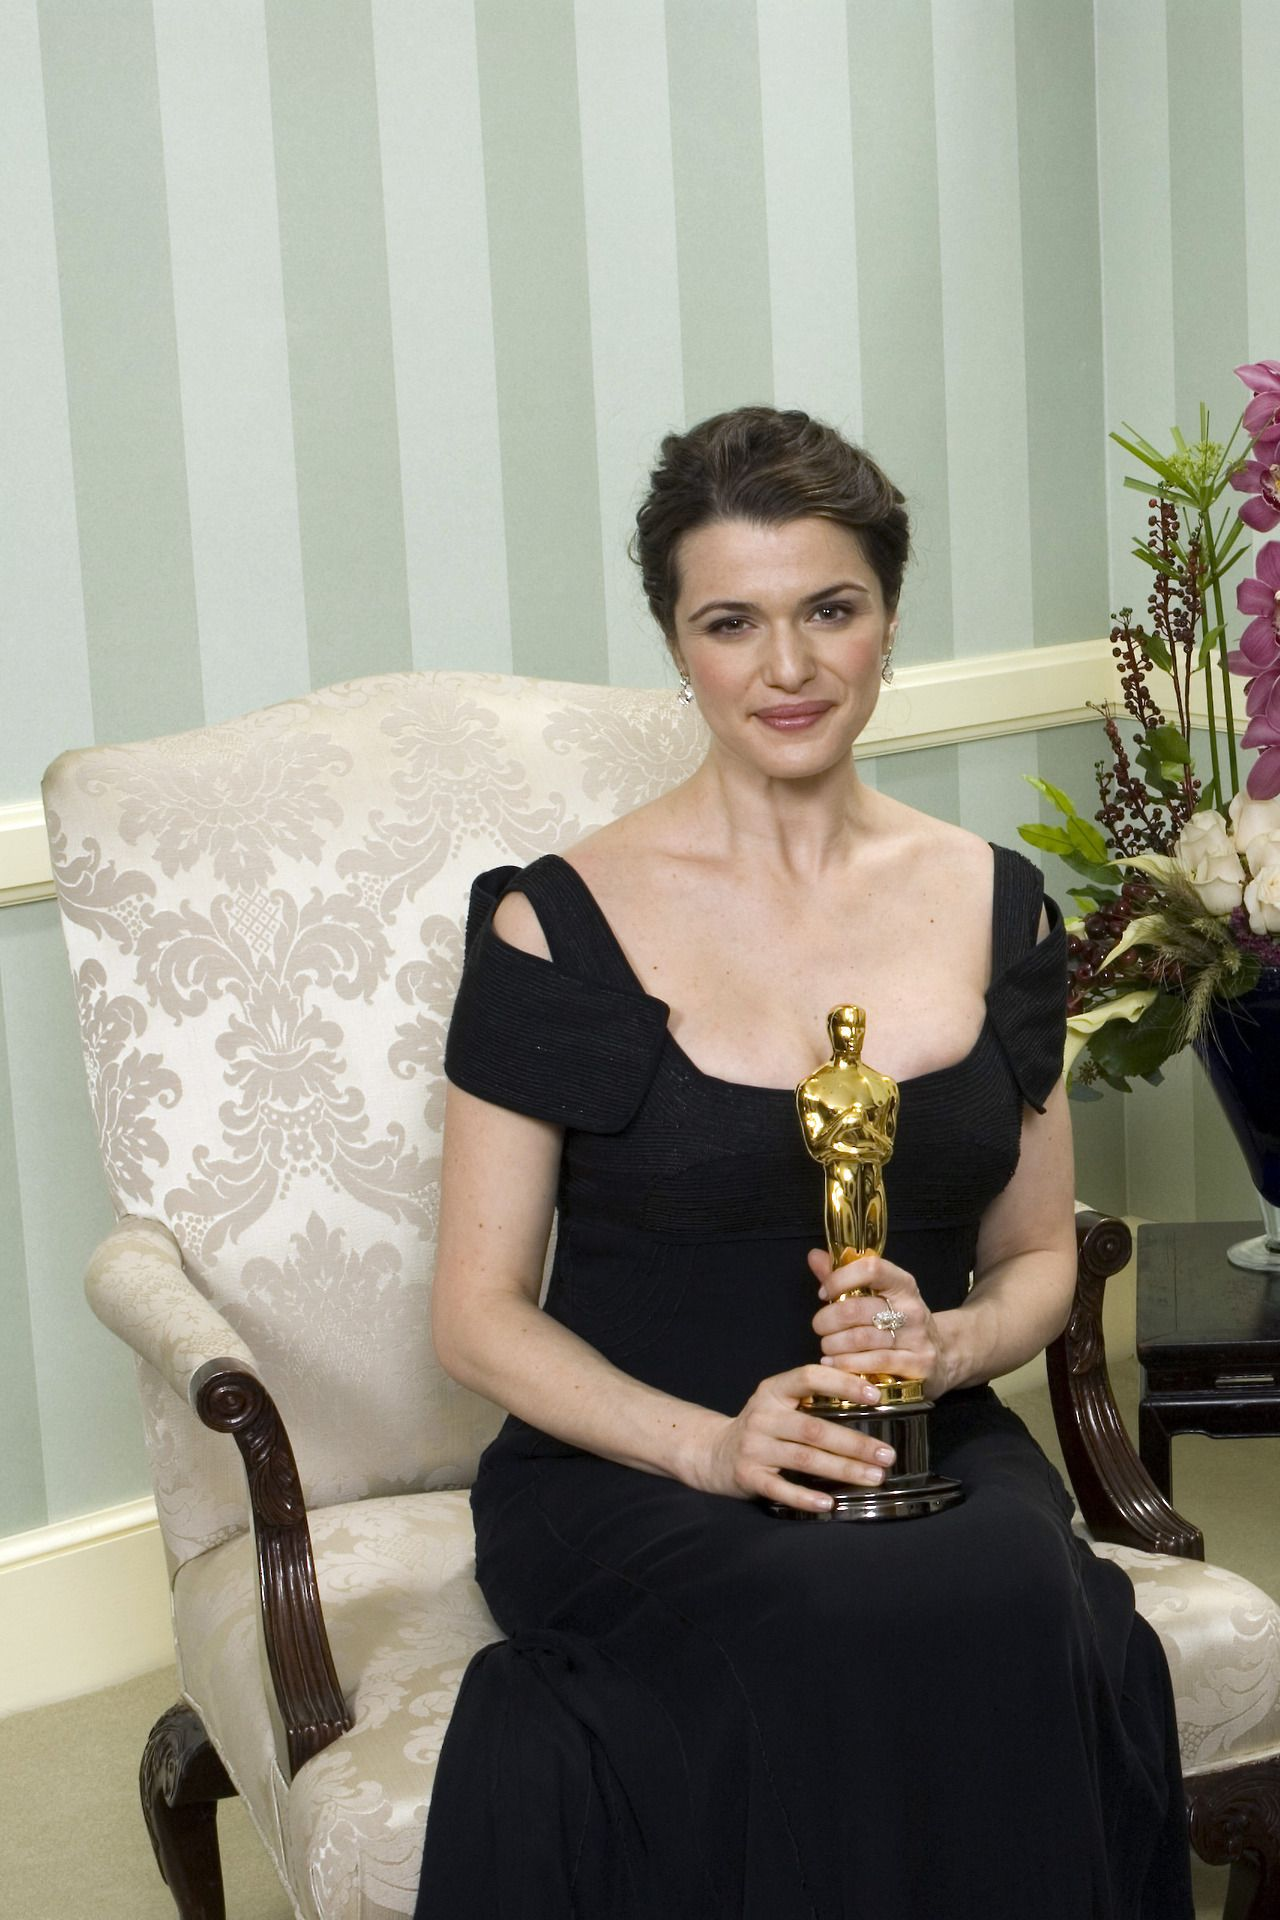 ea1538c8413e329c40e4c53915539379 - Actress Who Won An Oscar For The Constant Gardener